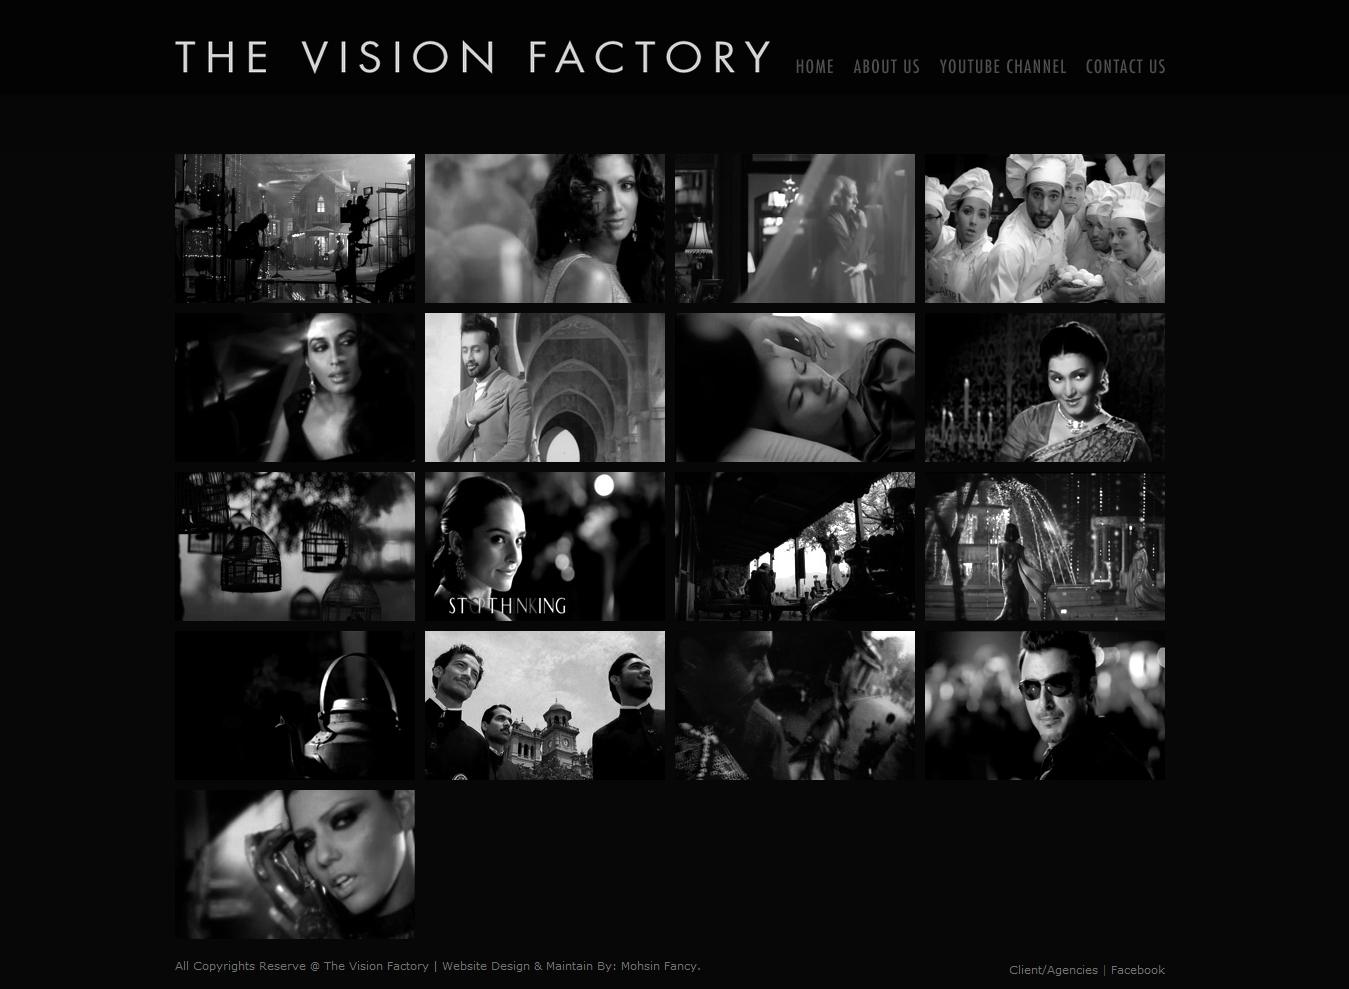 The Vision Factory HomePage